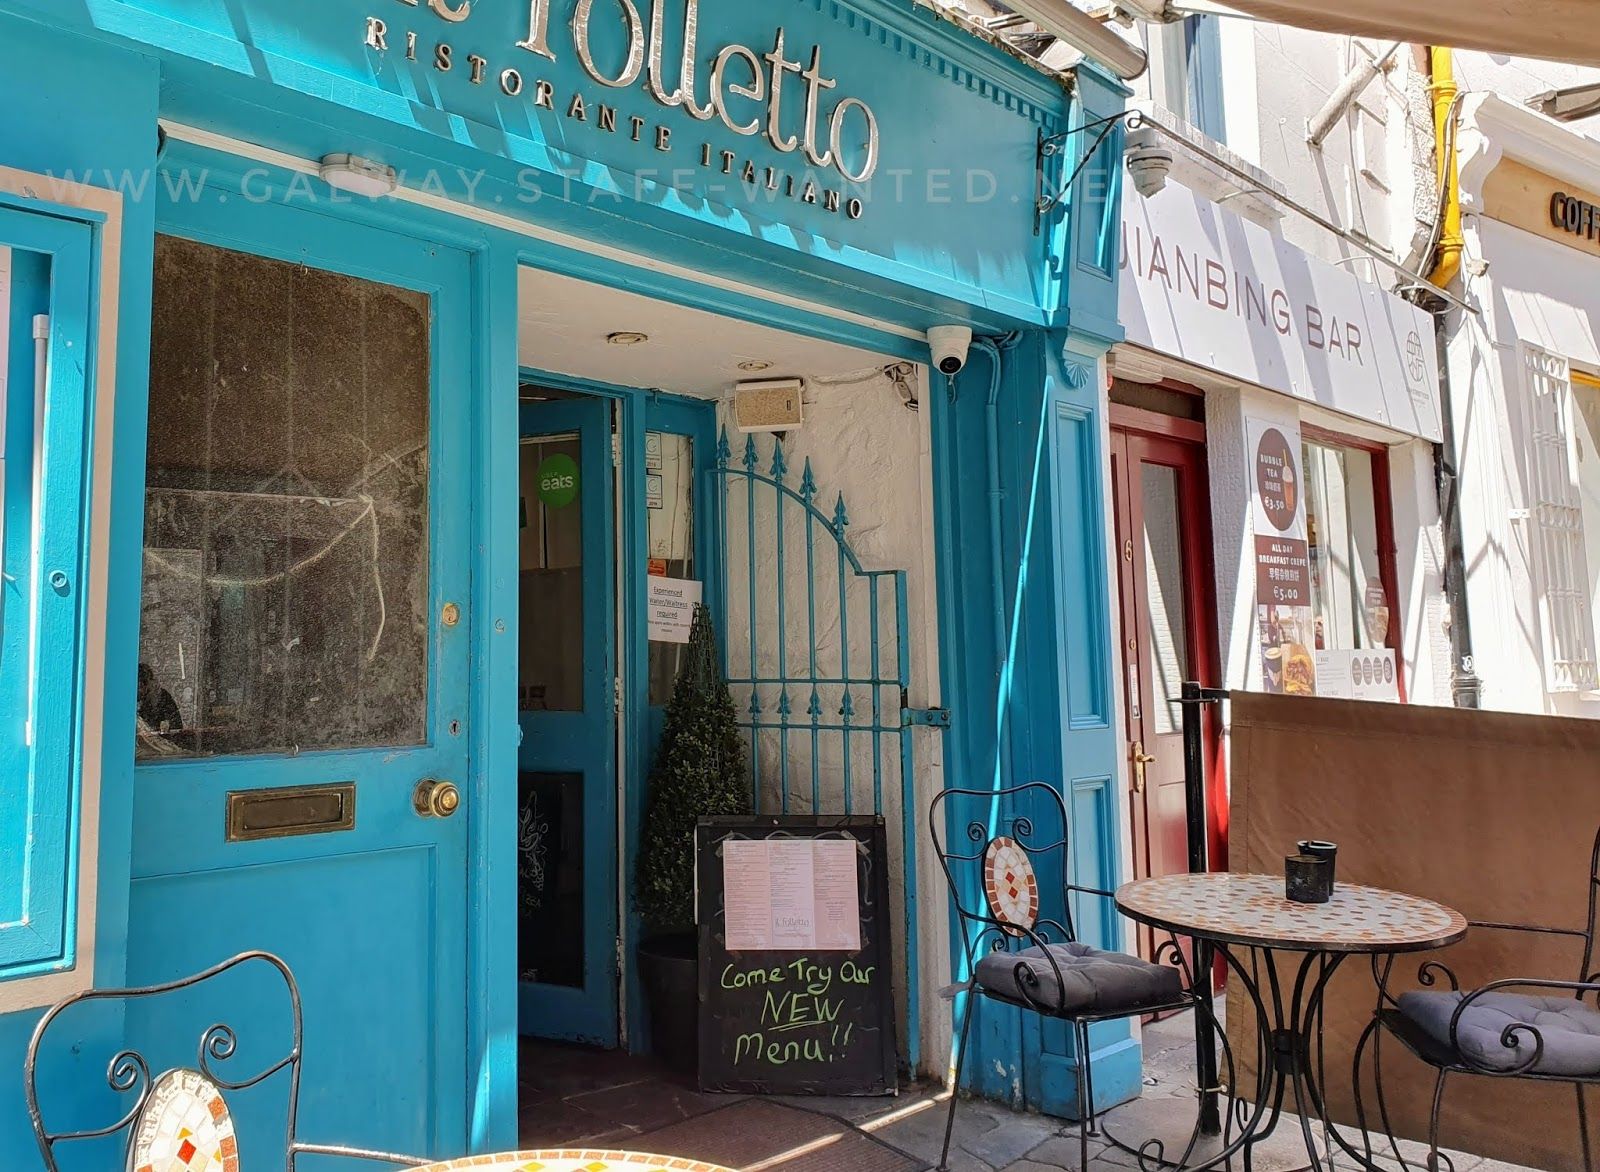 Bright turquoise shop front  in an Italian restaurant in the sunshine under a canopy.